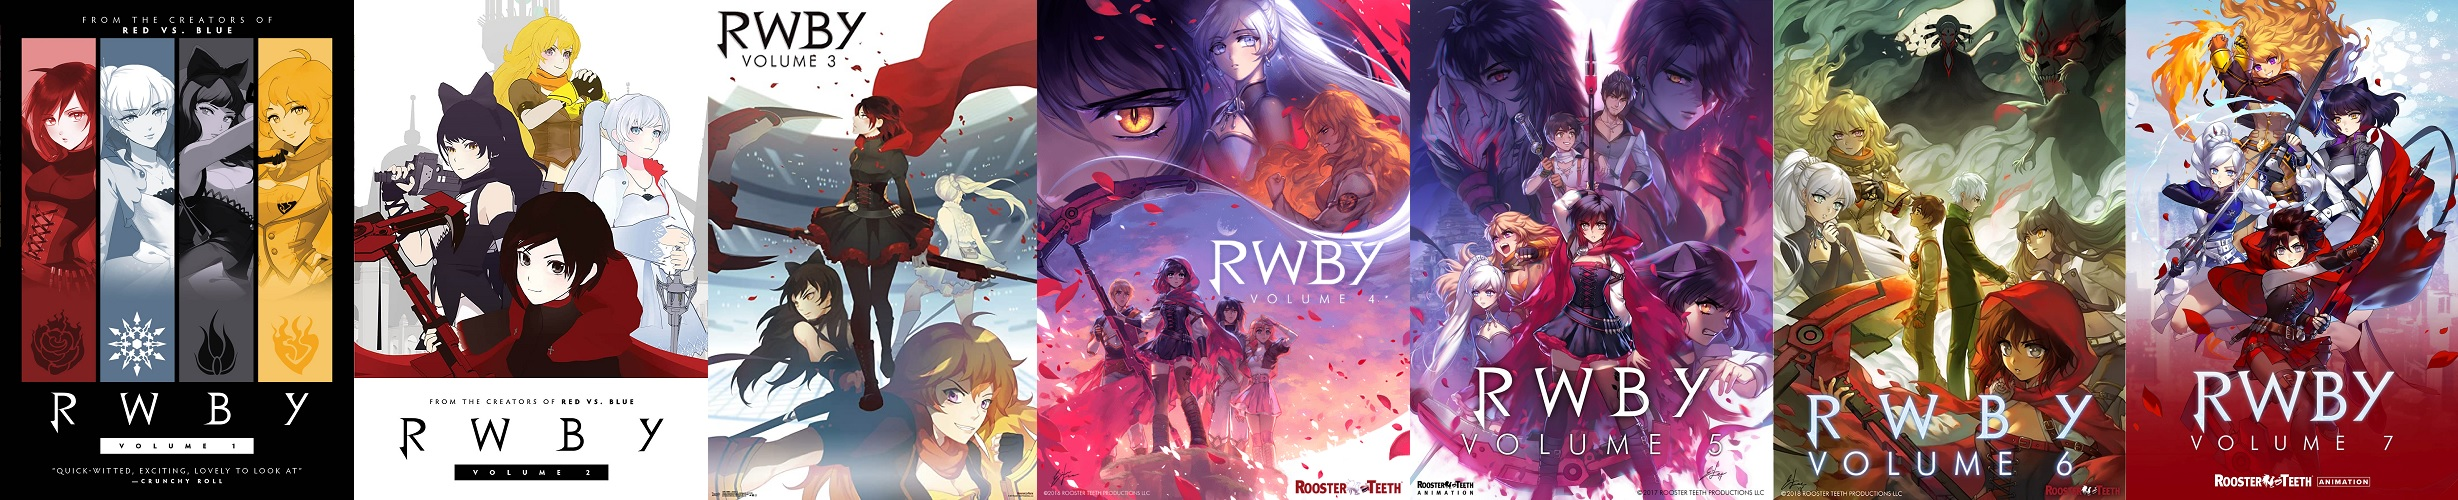 RWBY posters, volumes 1 to 7